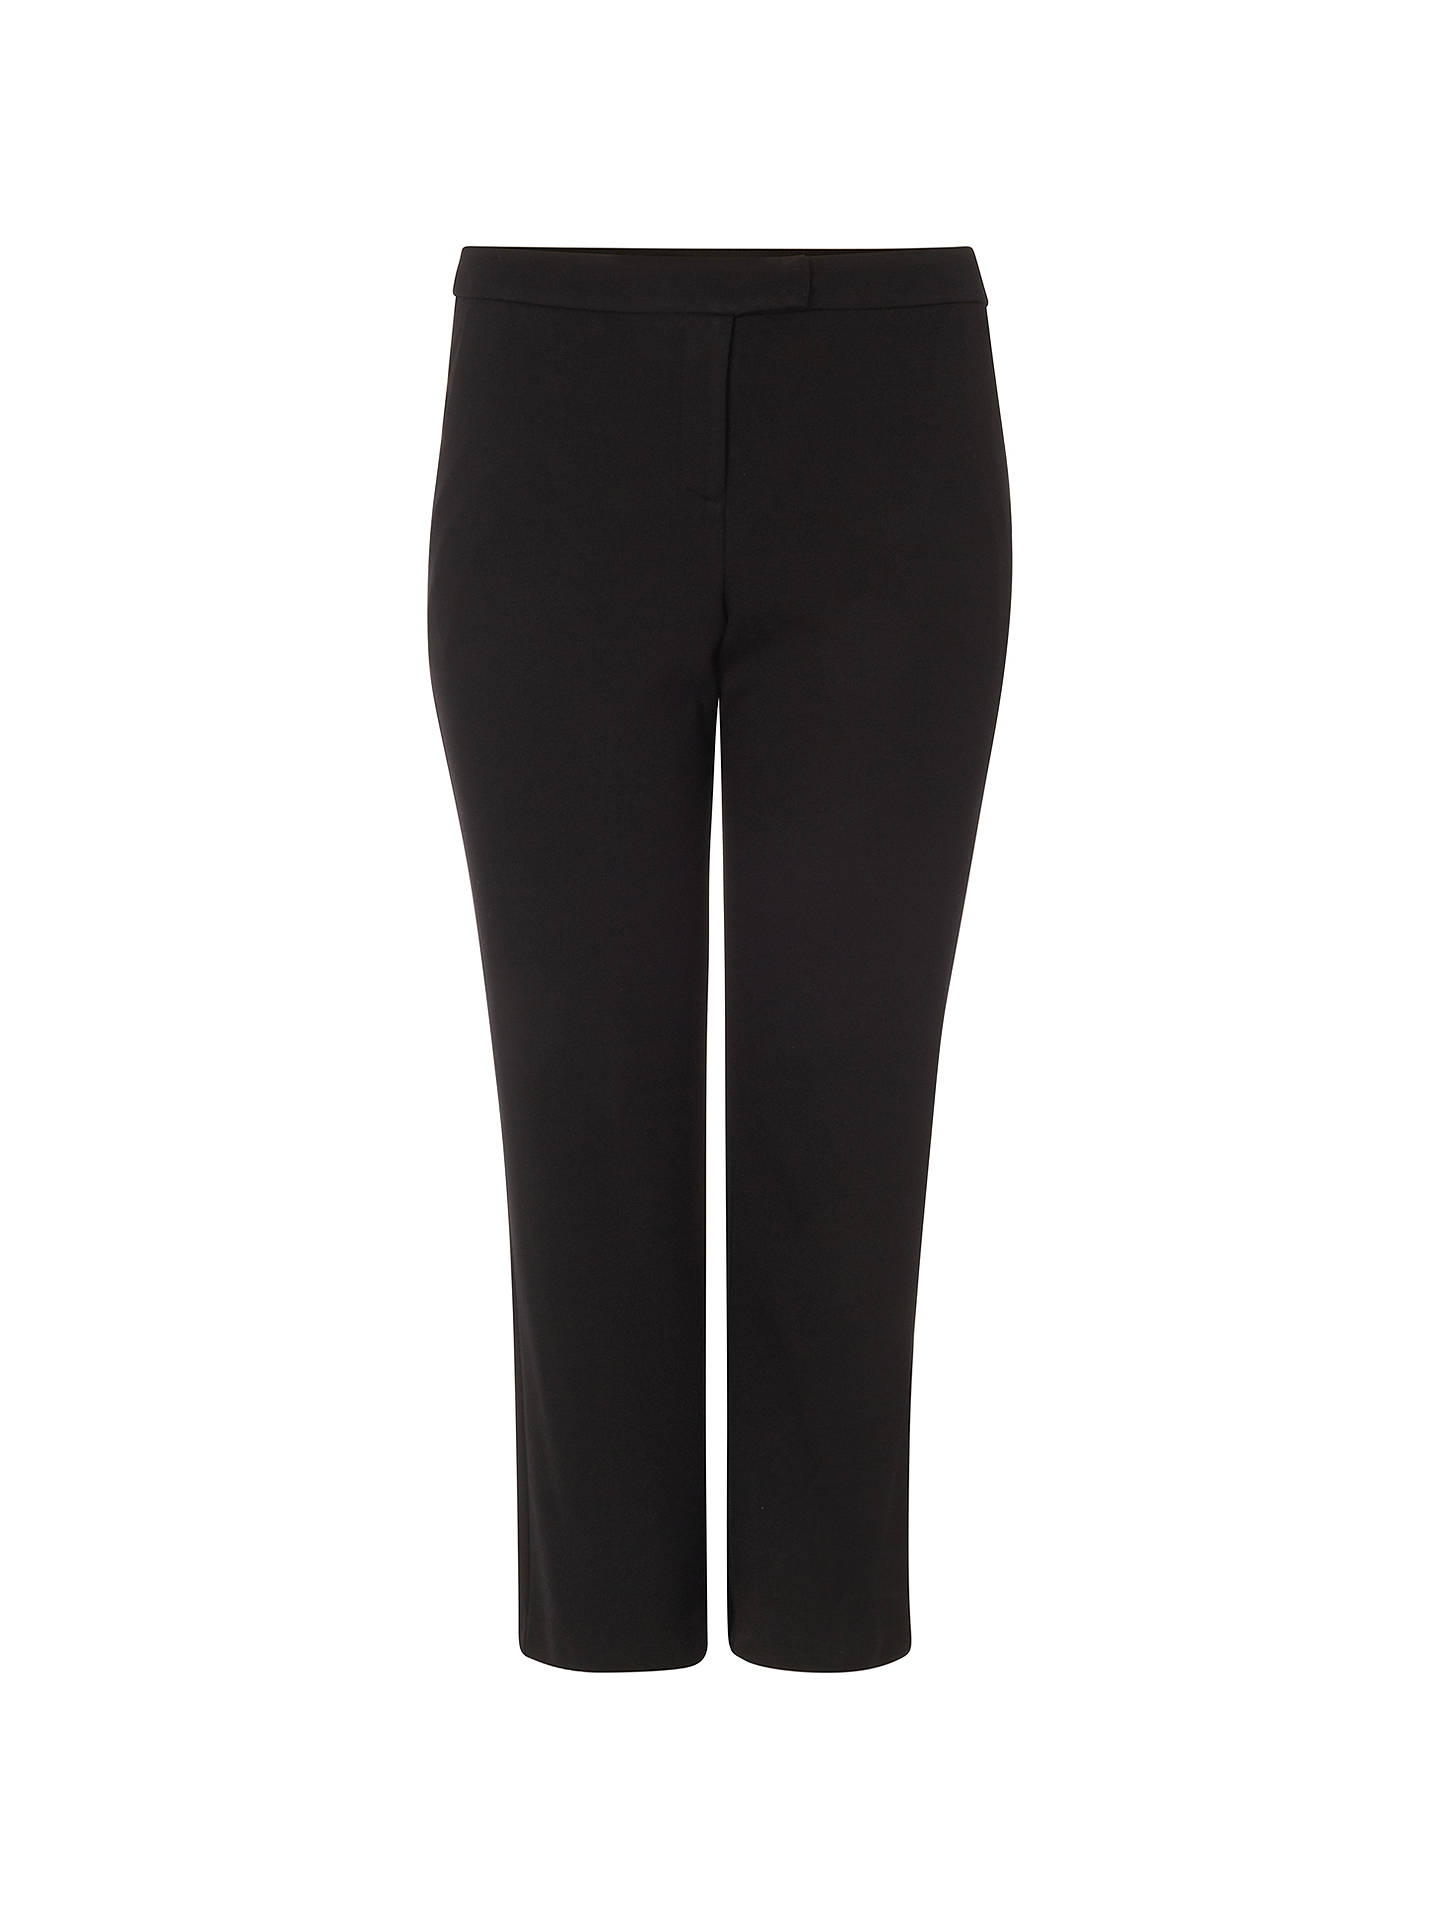 Buy Studio 8 Phillis Trousers, Black, 12 Online at johnlewis.com